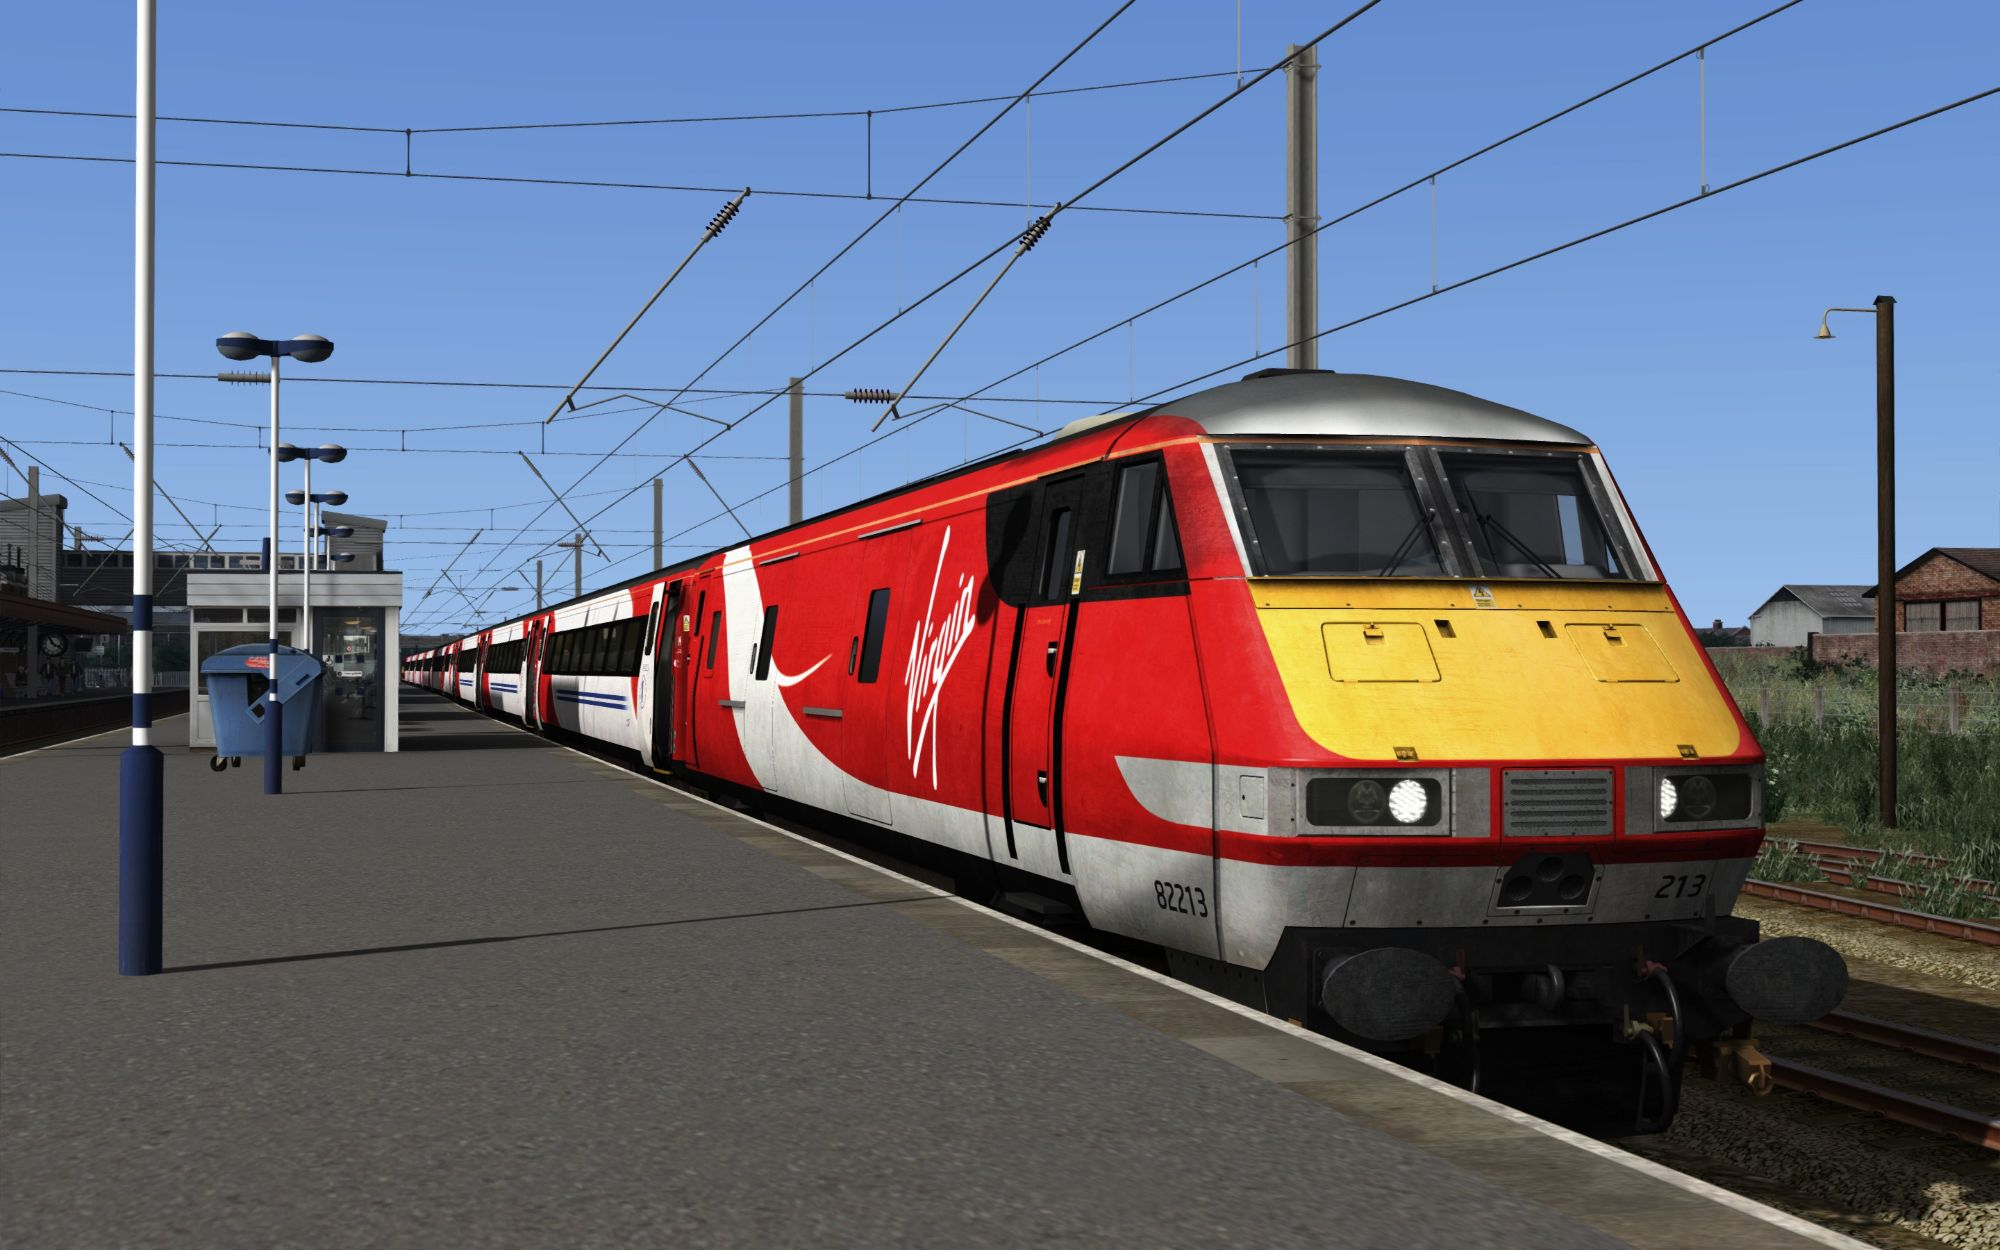 Image showing screenshot of the 1B87 - 1556 Newark North Gate to London Kings Cross scenario